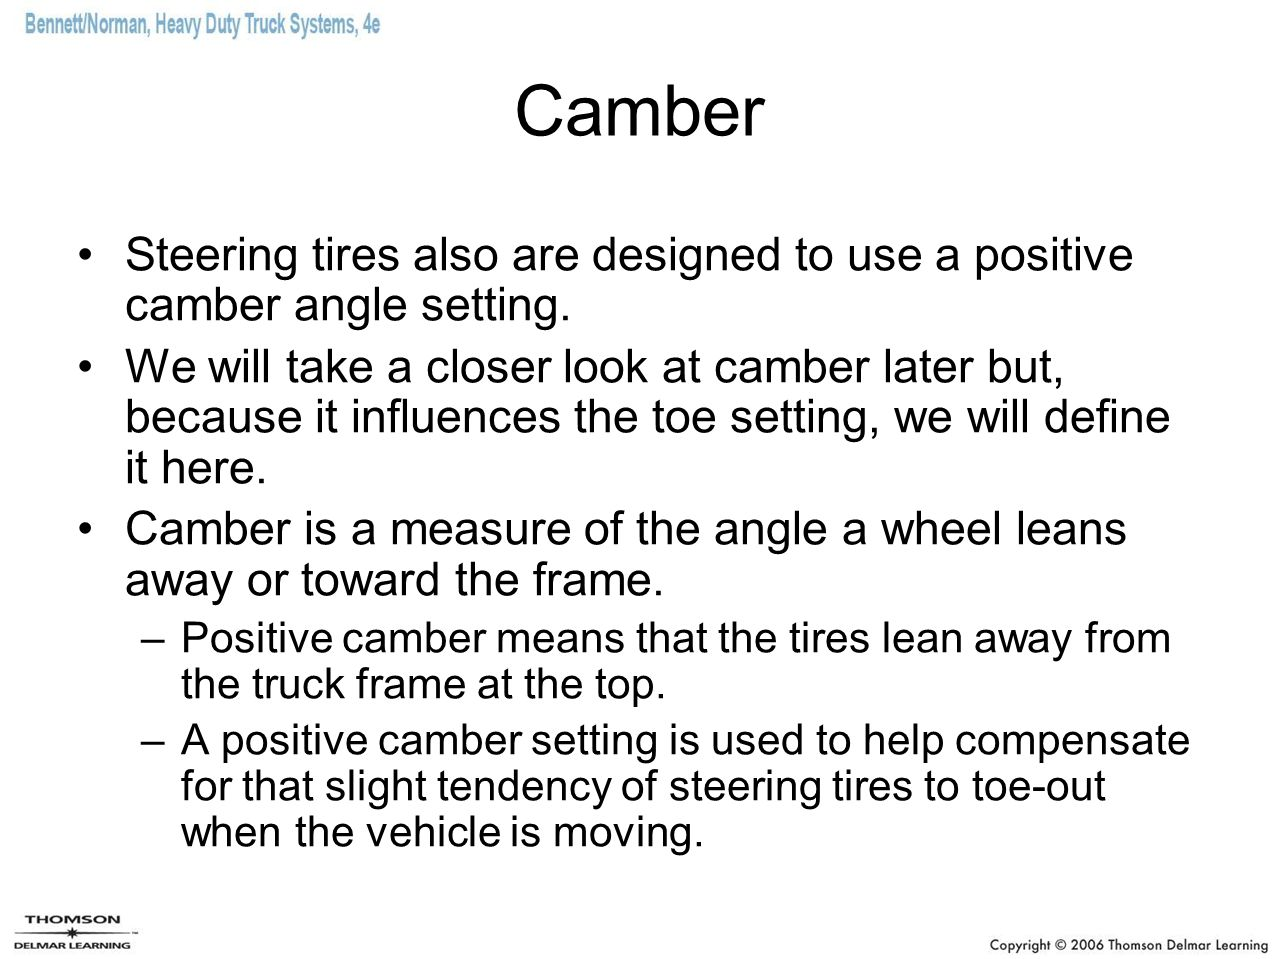 Camber Steering tires also are designed to use a positive camber angle setting.